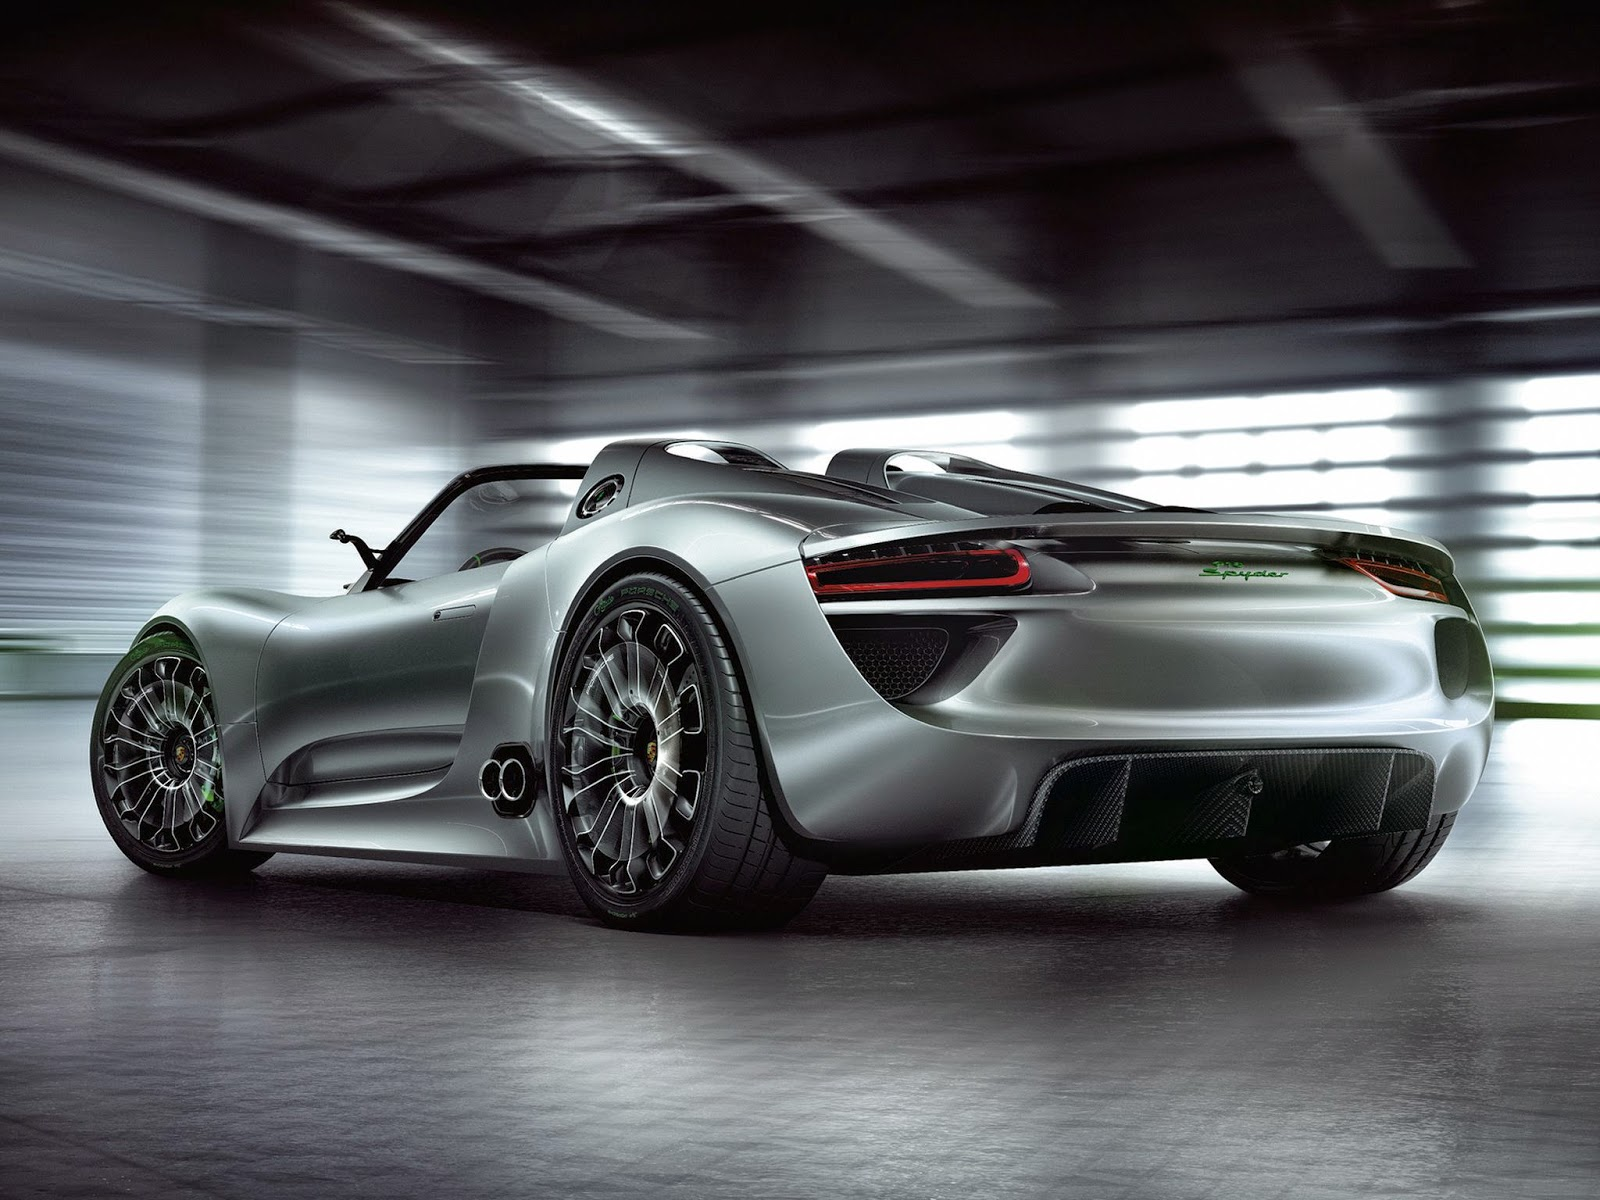 10 3d Wallpapers Car Sport Desktop Download Free Best Top